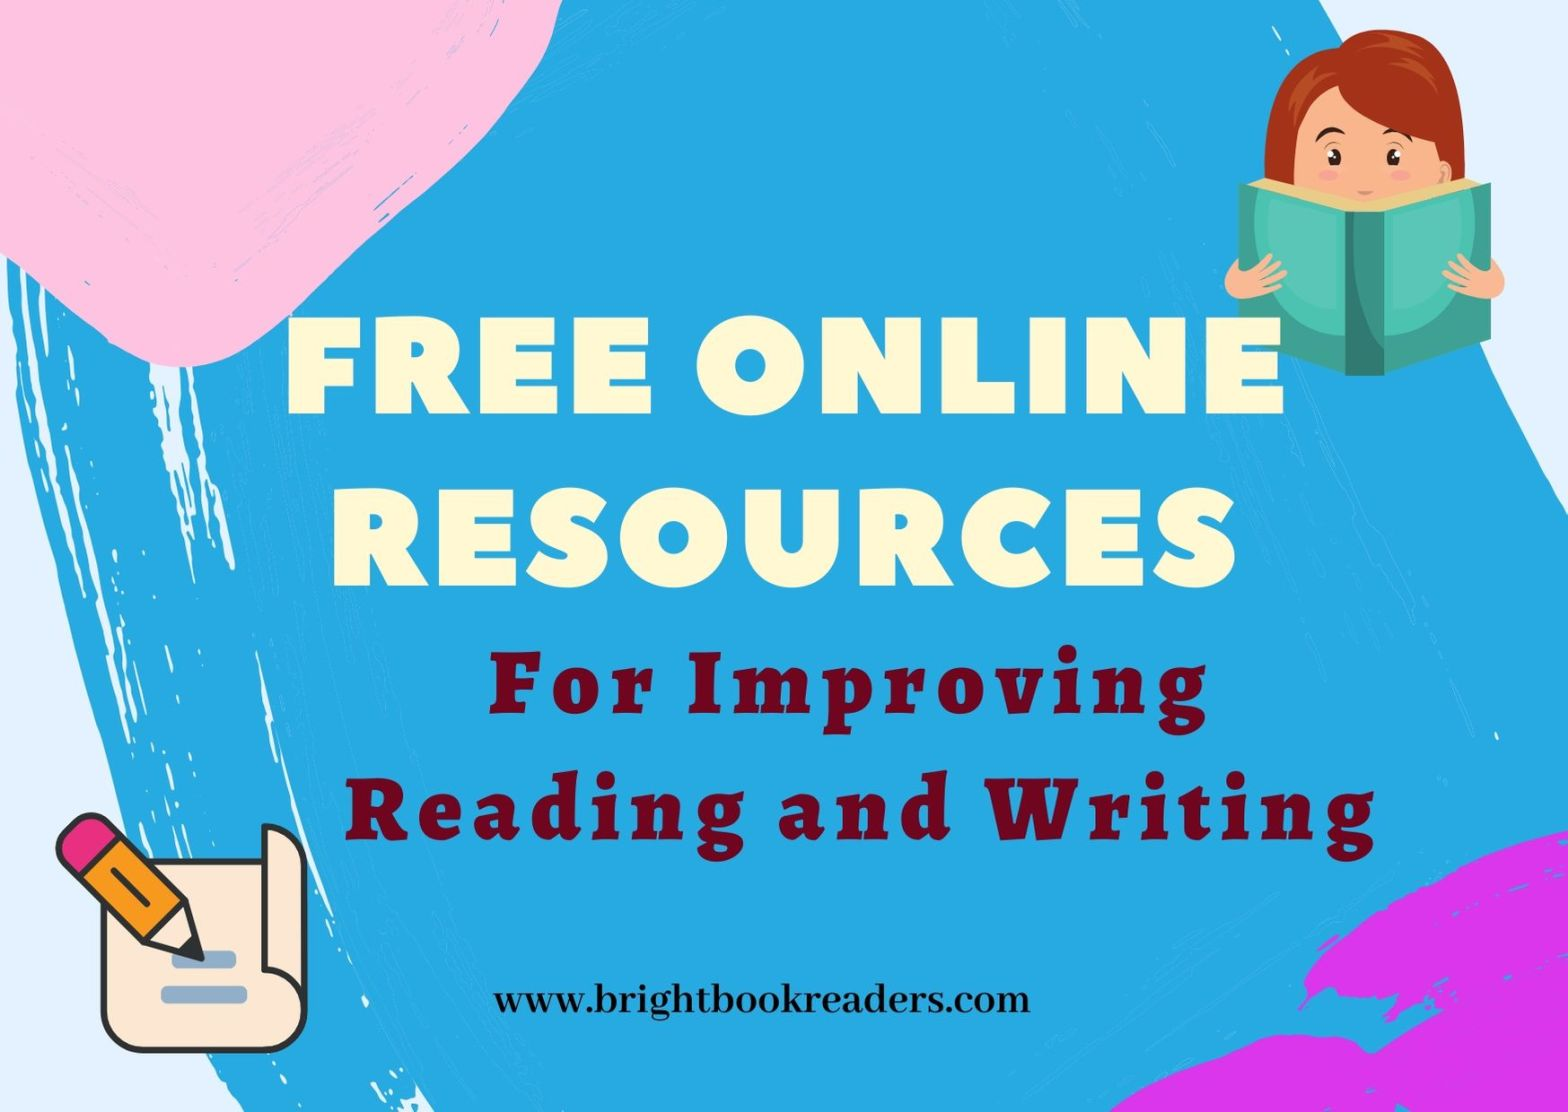 Free Online Resources for Reading and Writing